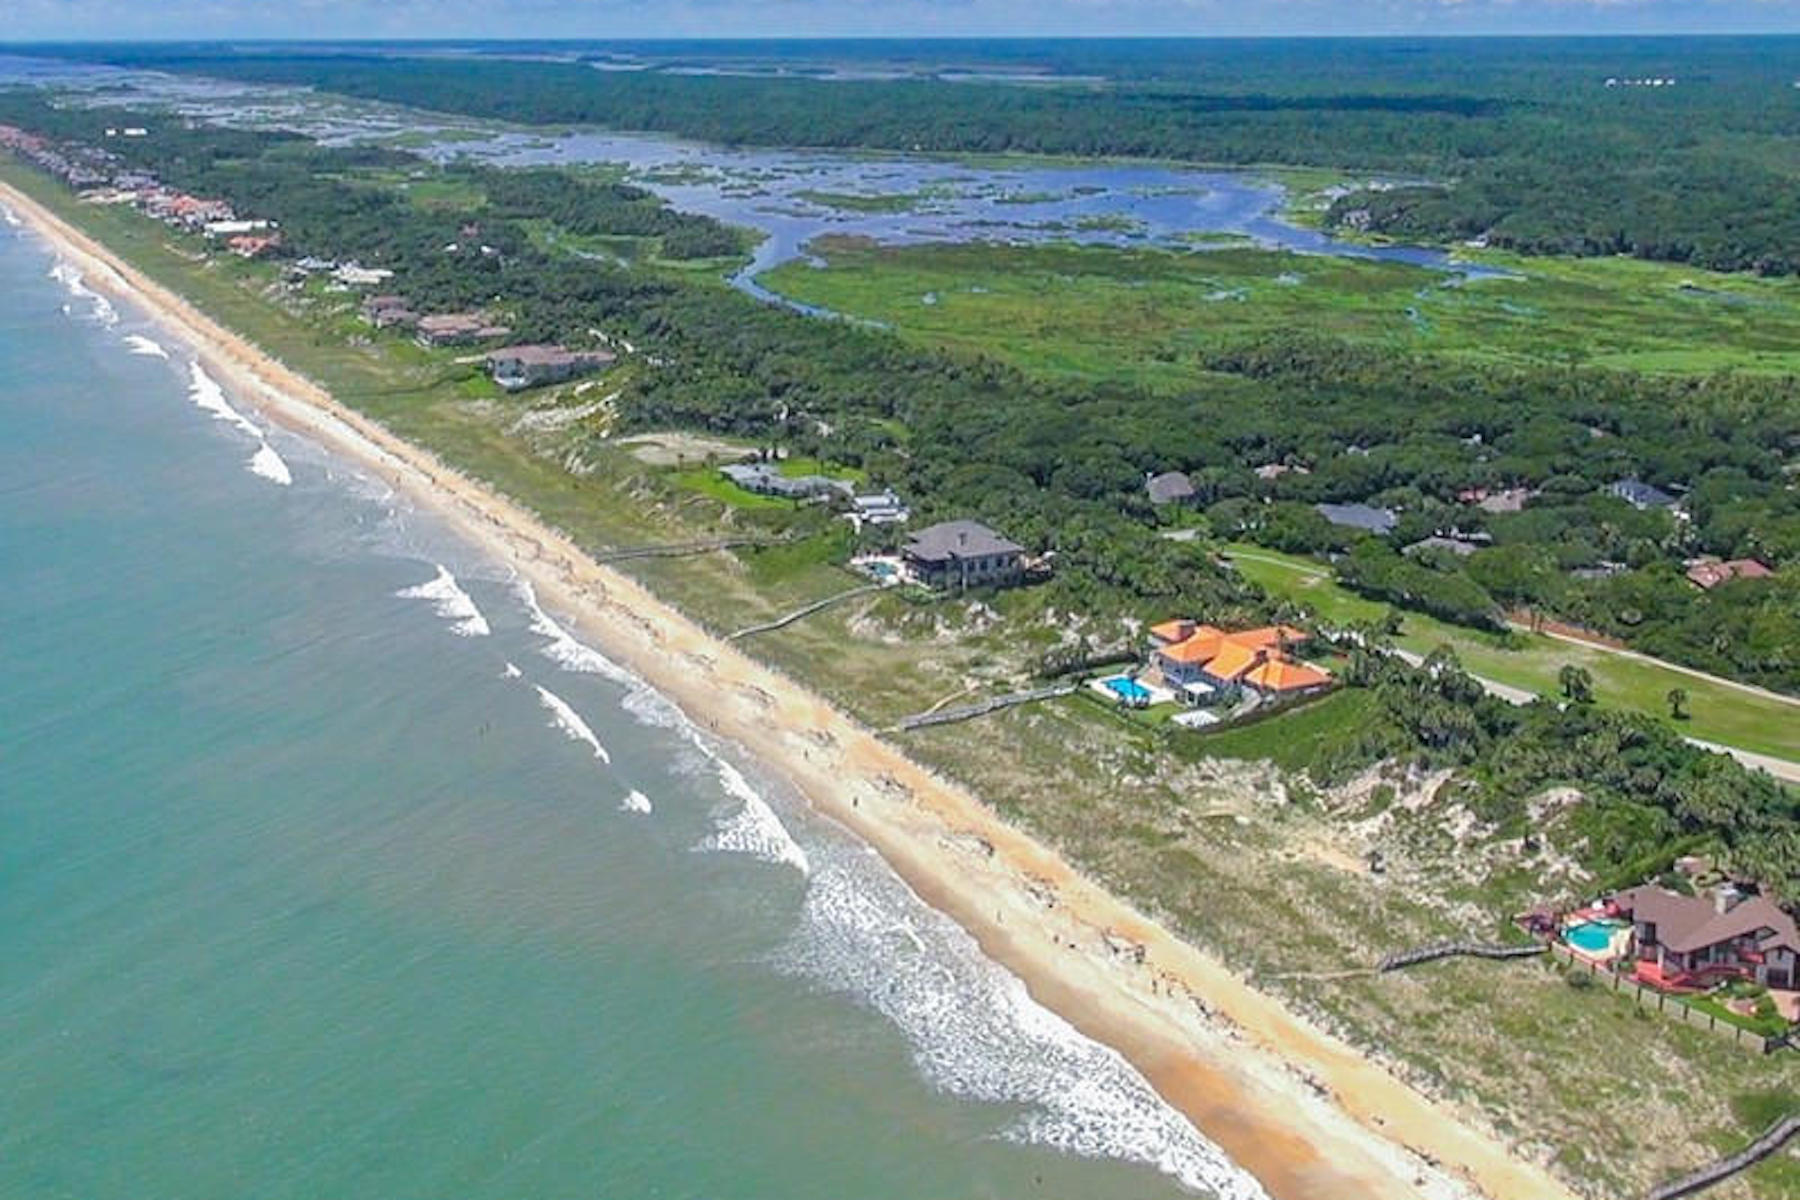 Land for Sale at Ponte Vedra Lots 1125/1127 Ponte Vedra Blvd. Ponte Vedra Beach, Florida 32082 United States